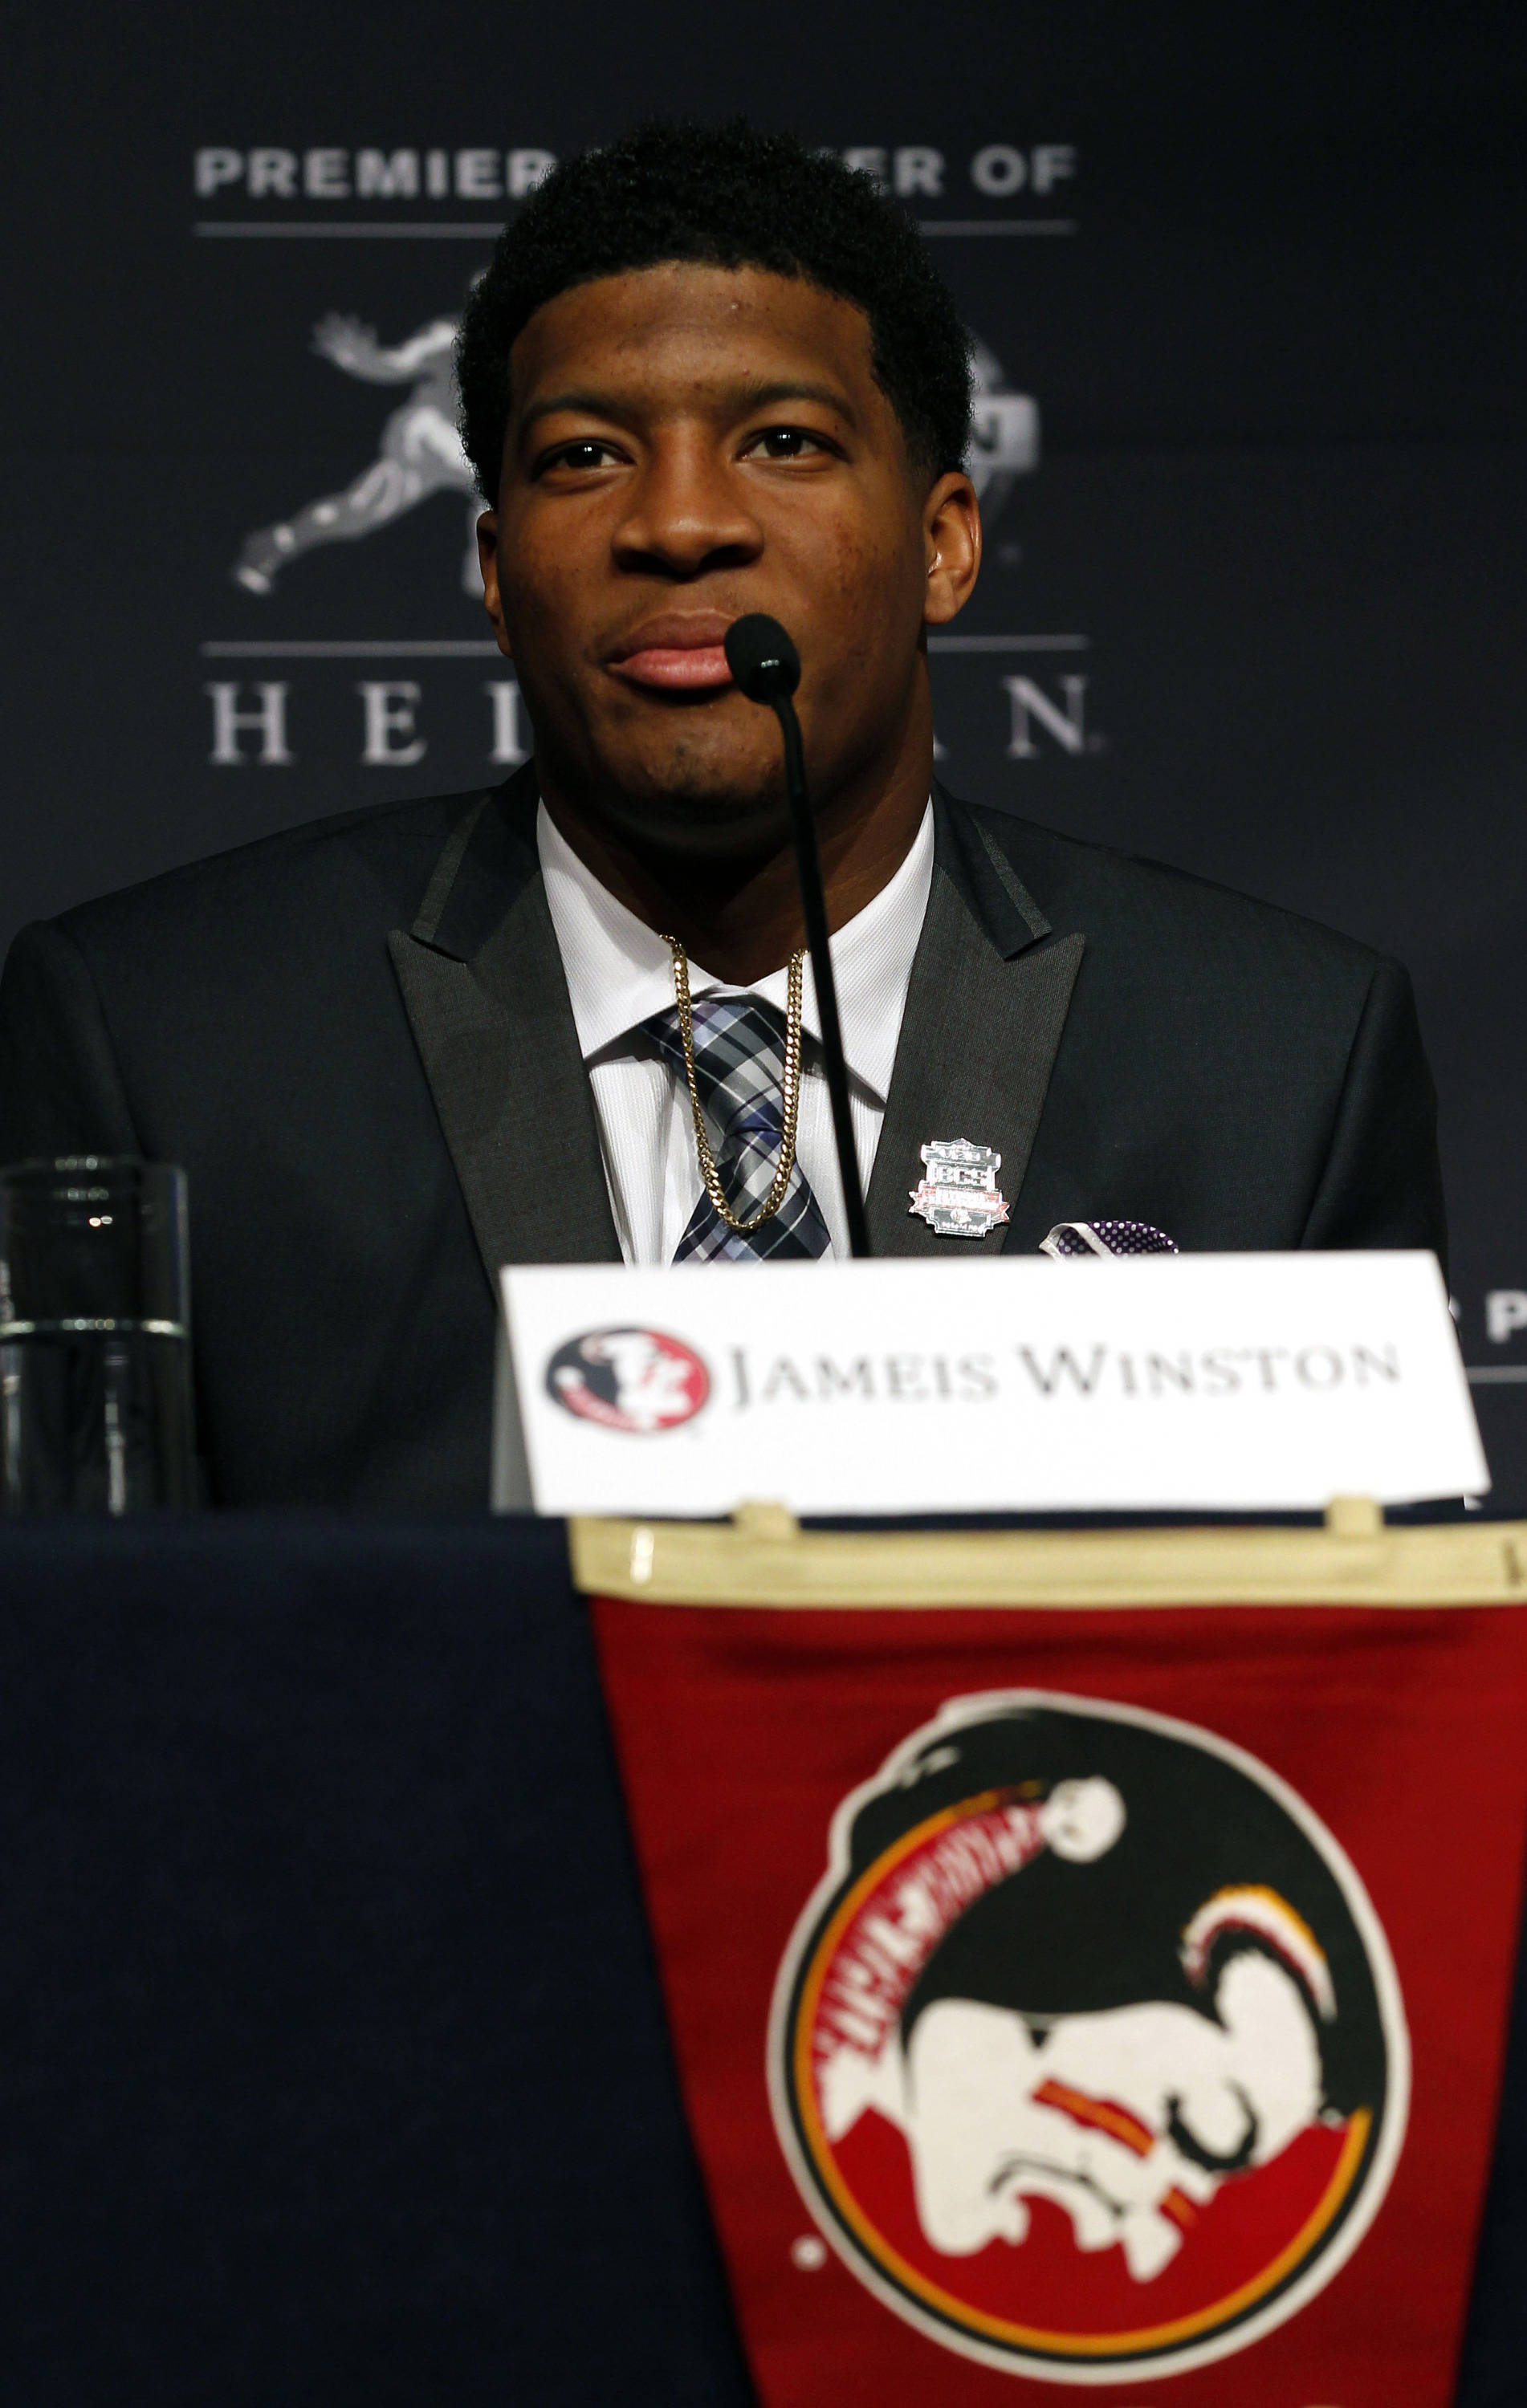 Dec 14, 2013; New York, NY, USA; Seminoles quarterback Jameis Winston during a press conference before the announcement of the 2013 Heisman Trophy winner. Adam Hunger-USA TODAY Sports